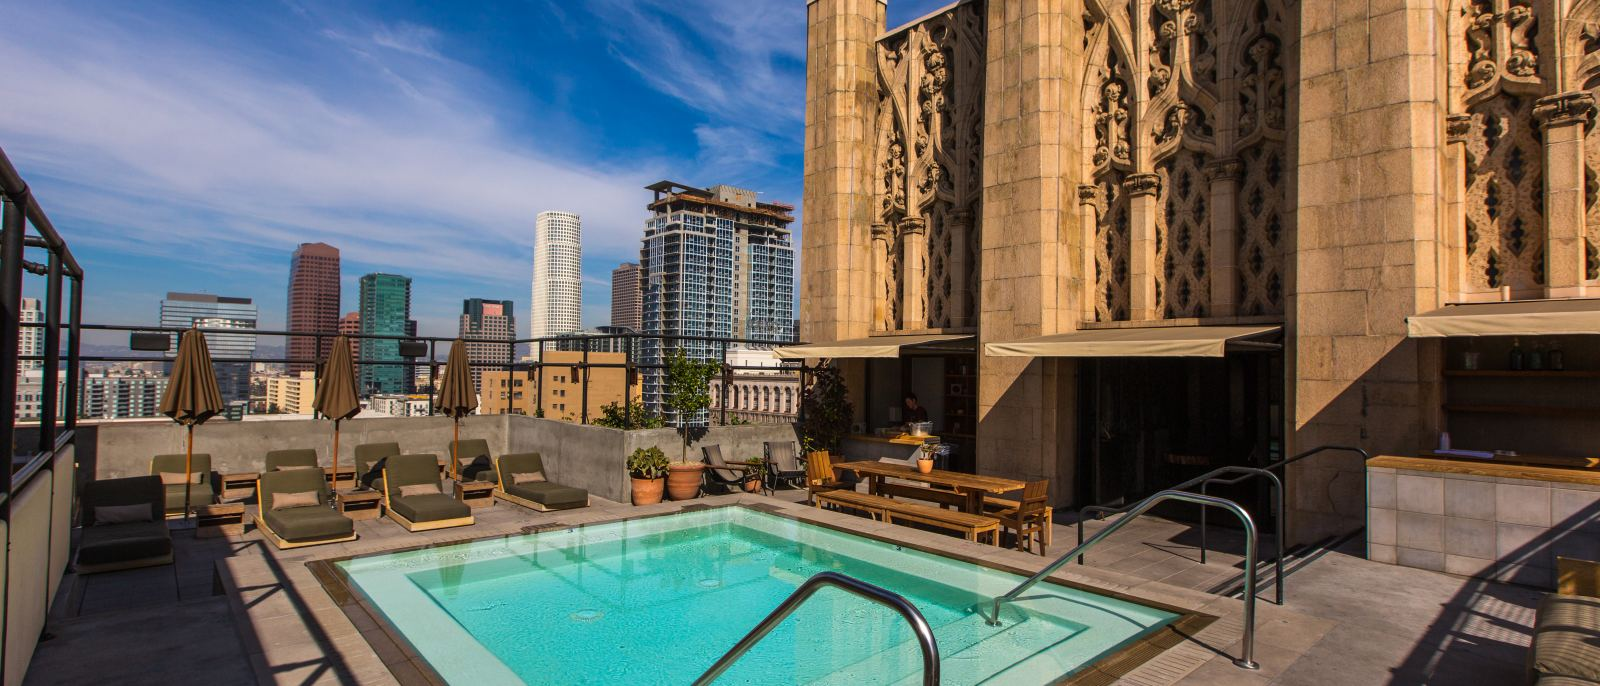 Ace Hotel Pool